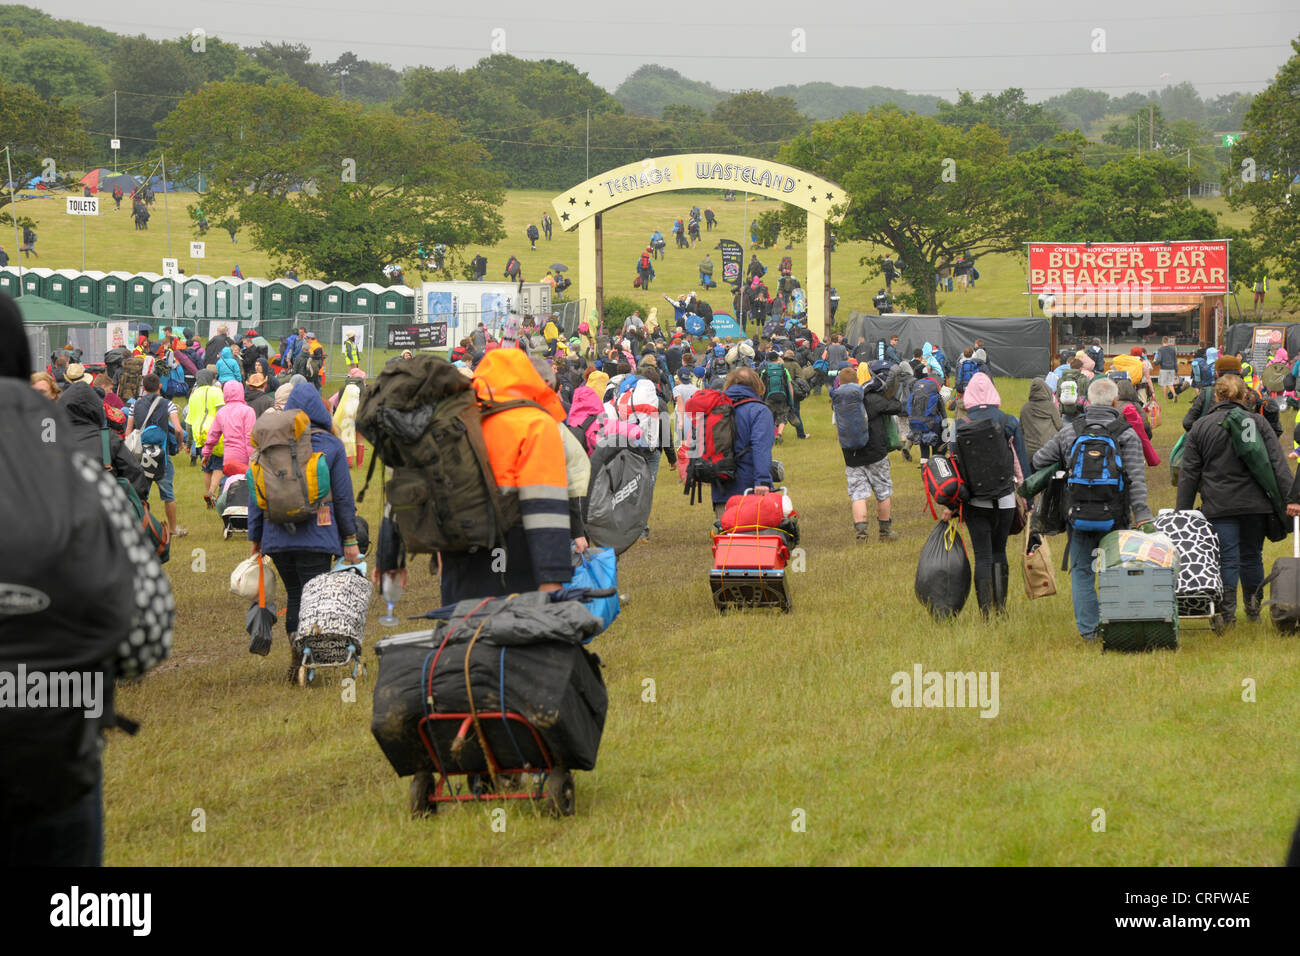 Heavy rain and traffic congestion brings chaos to the Isle of Wight festival but revelers flood in to the venue Stock Photo